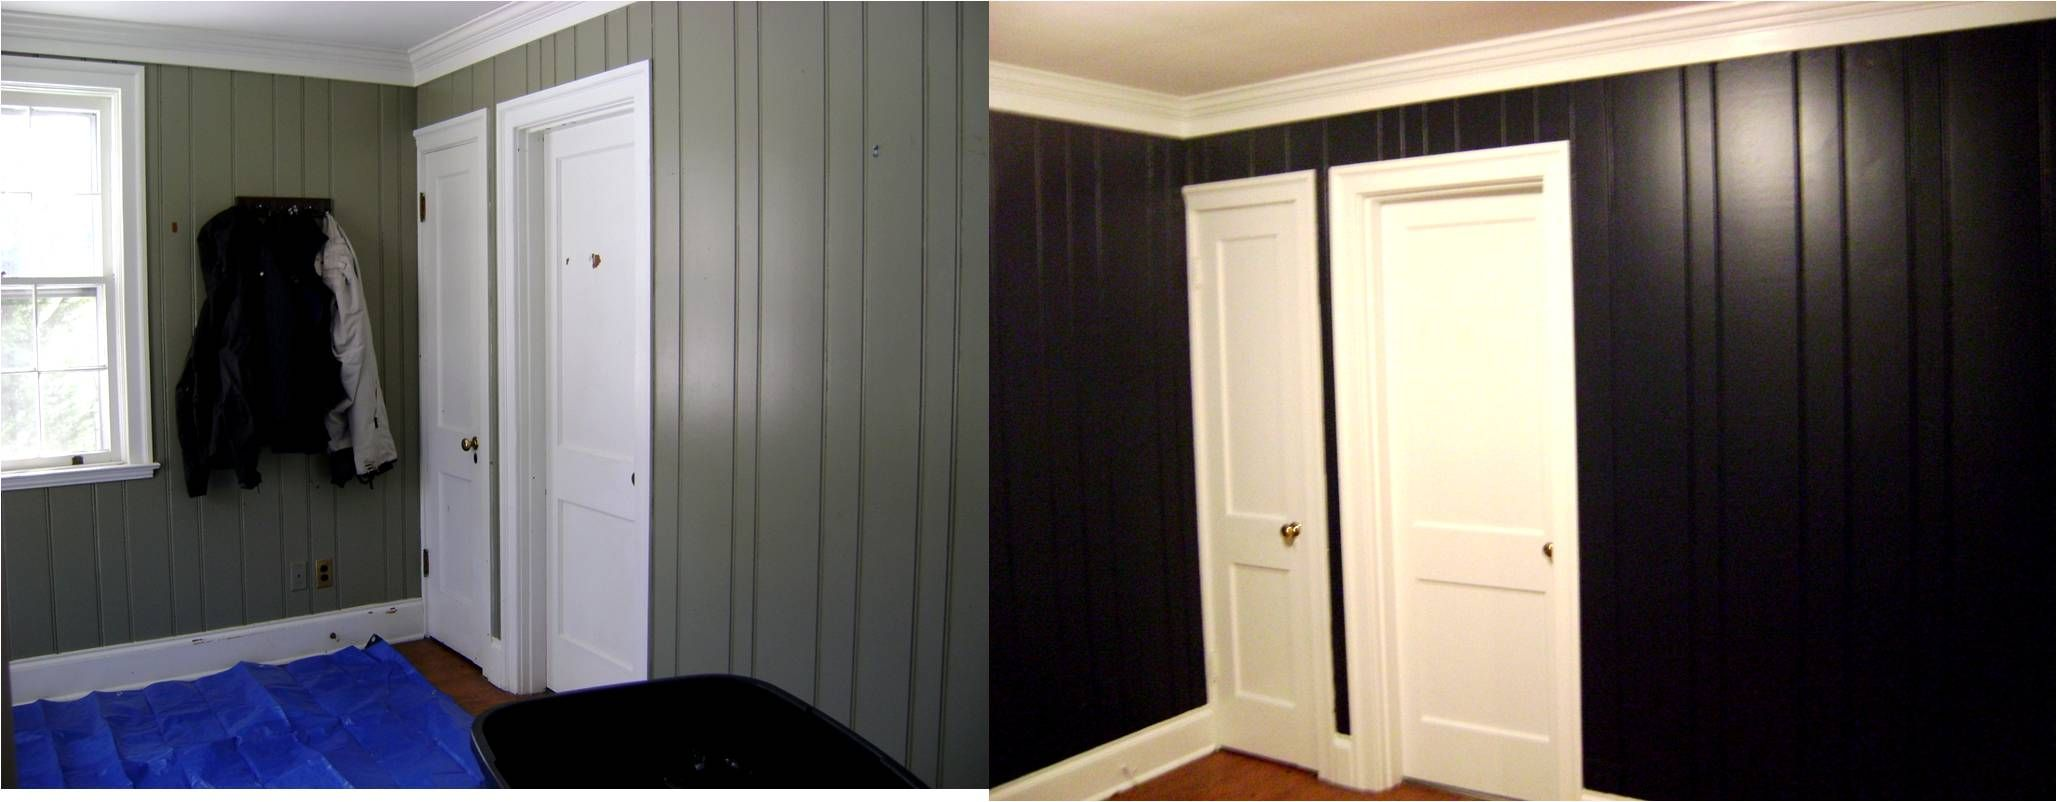 The Power of Paint | Navy paint, Painting wood paneling ...